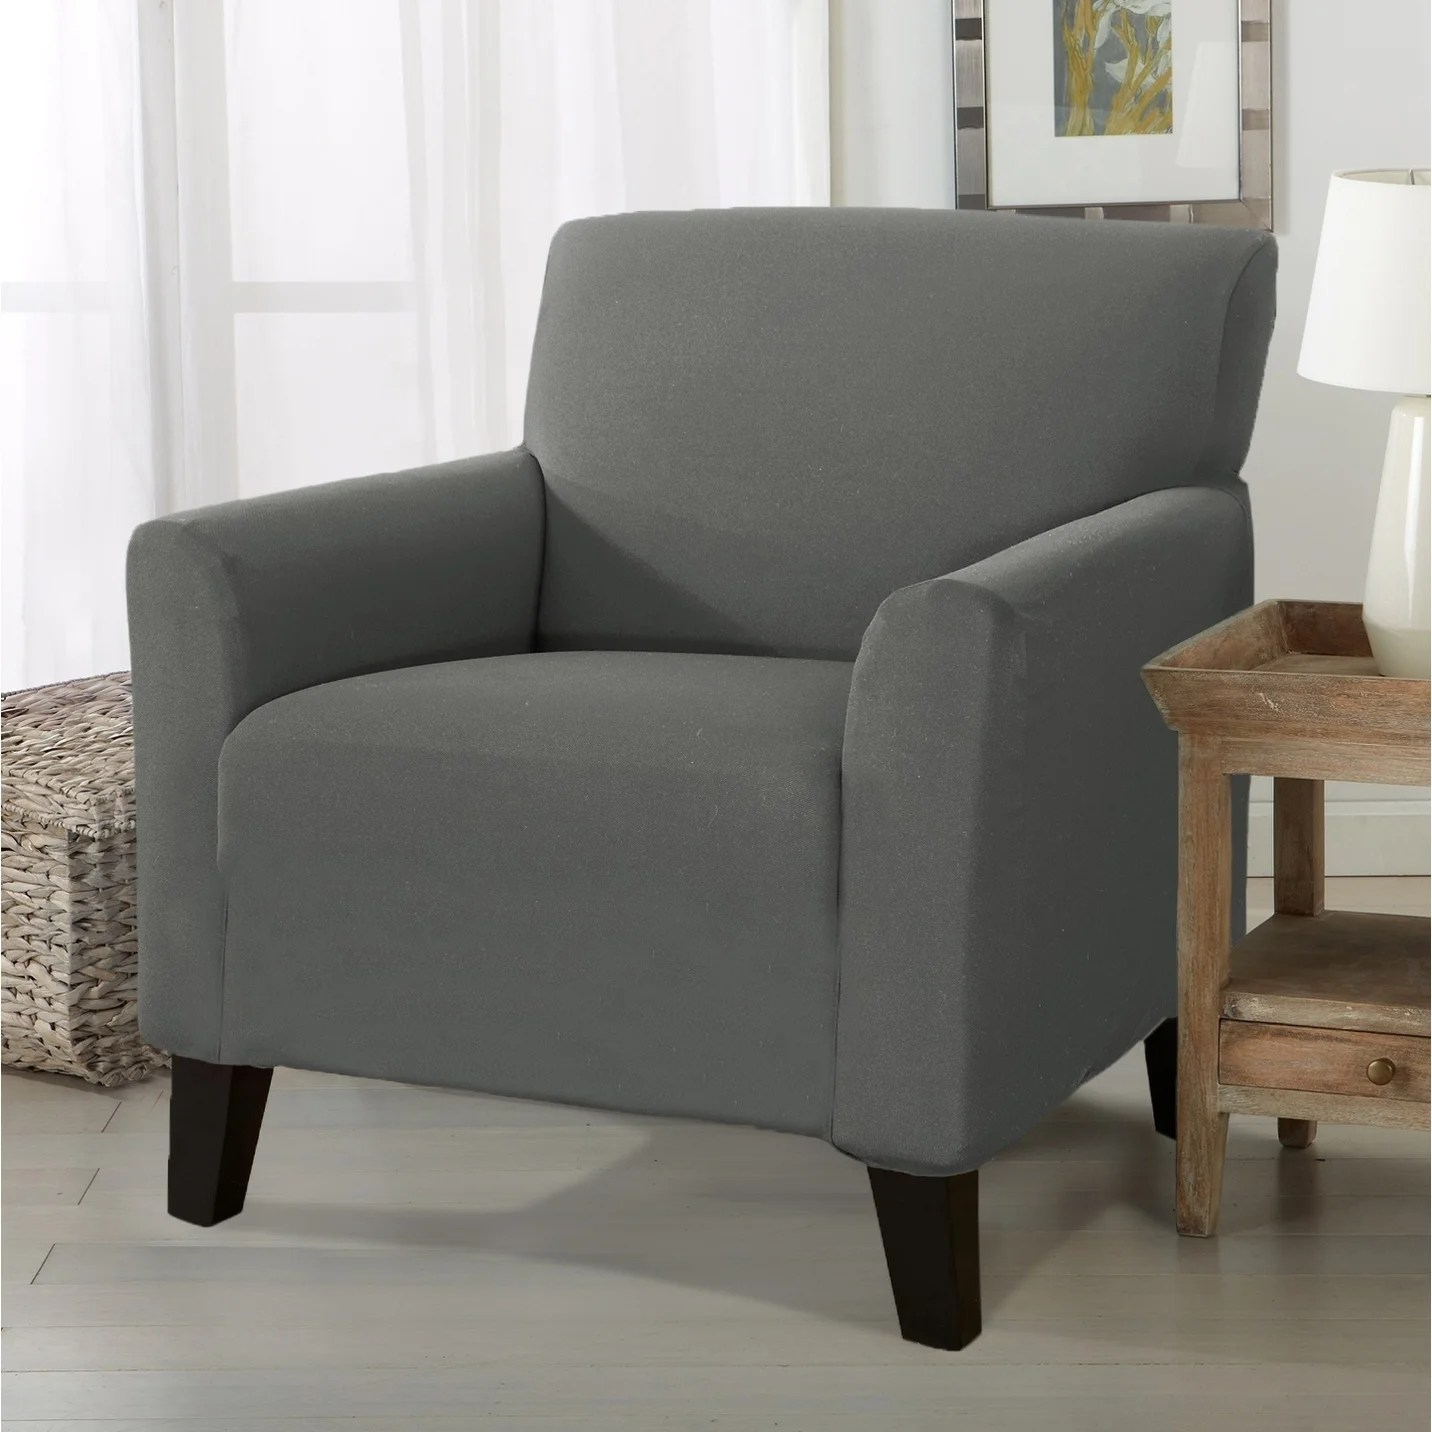 slipcovers furniture covers find great home decor deals shopping at overstock com